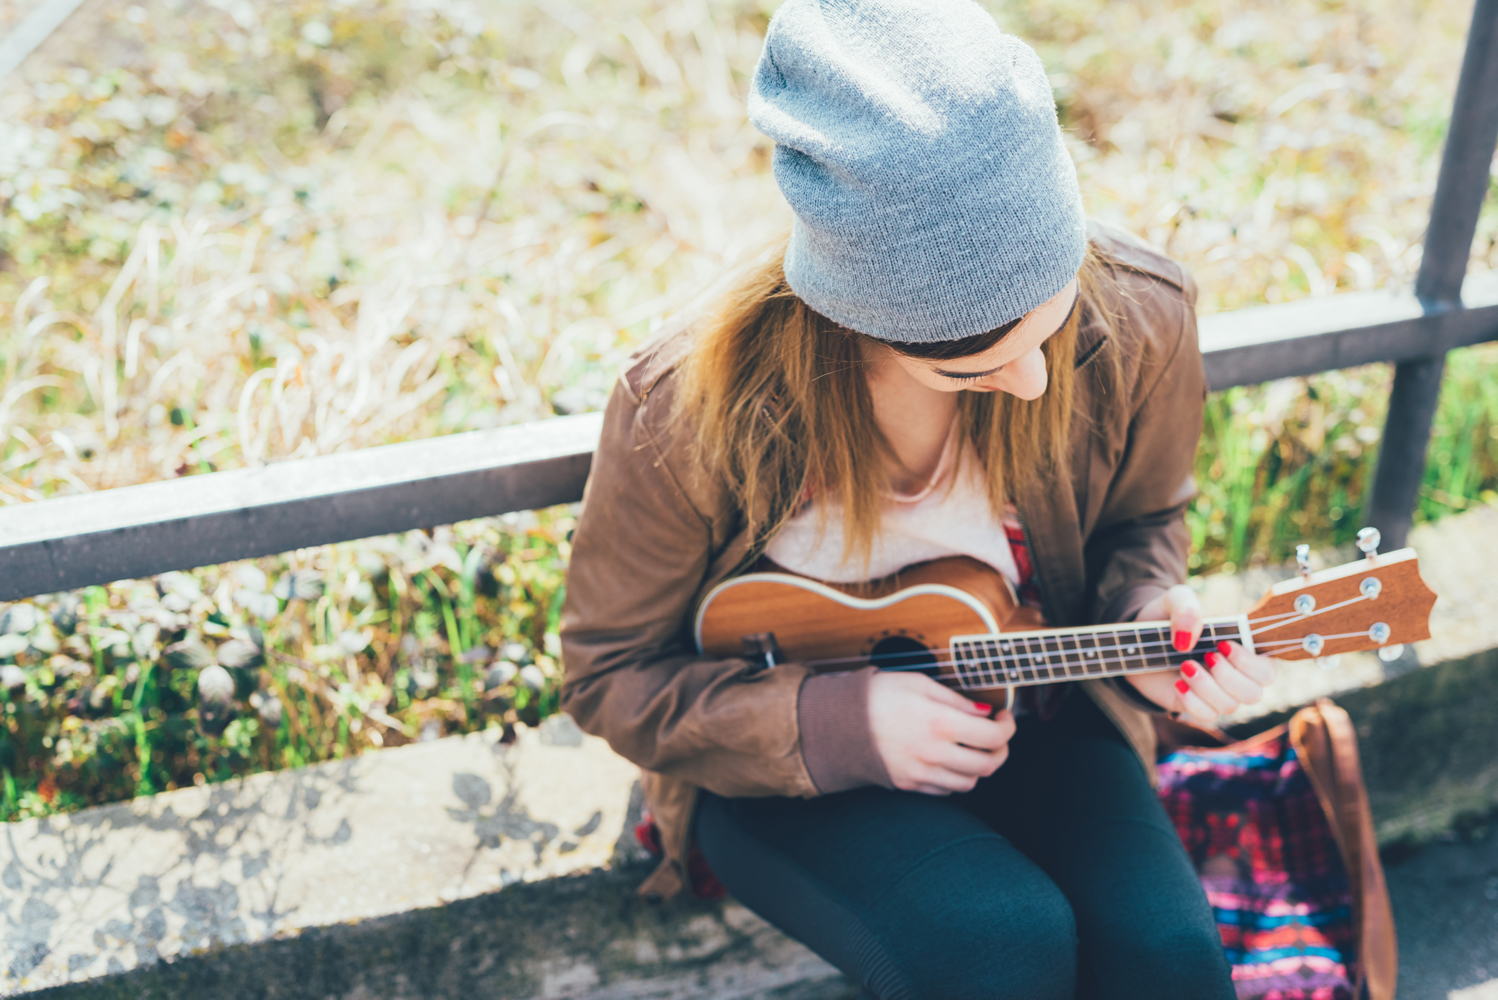 graphicstock young woman in the city playing ukulele busker musician composer concept HTRbpSF1